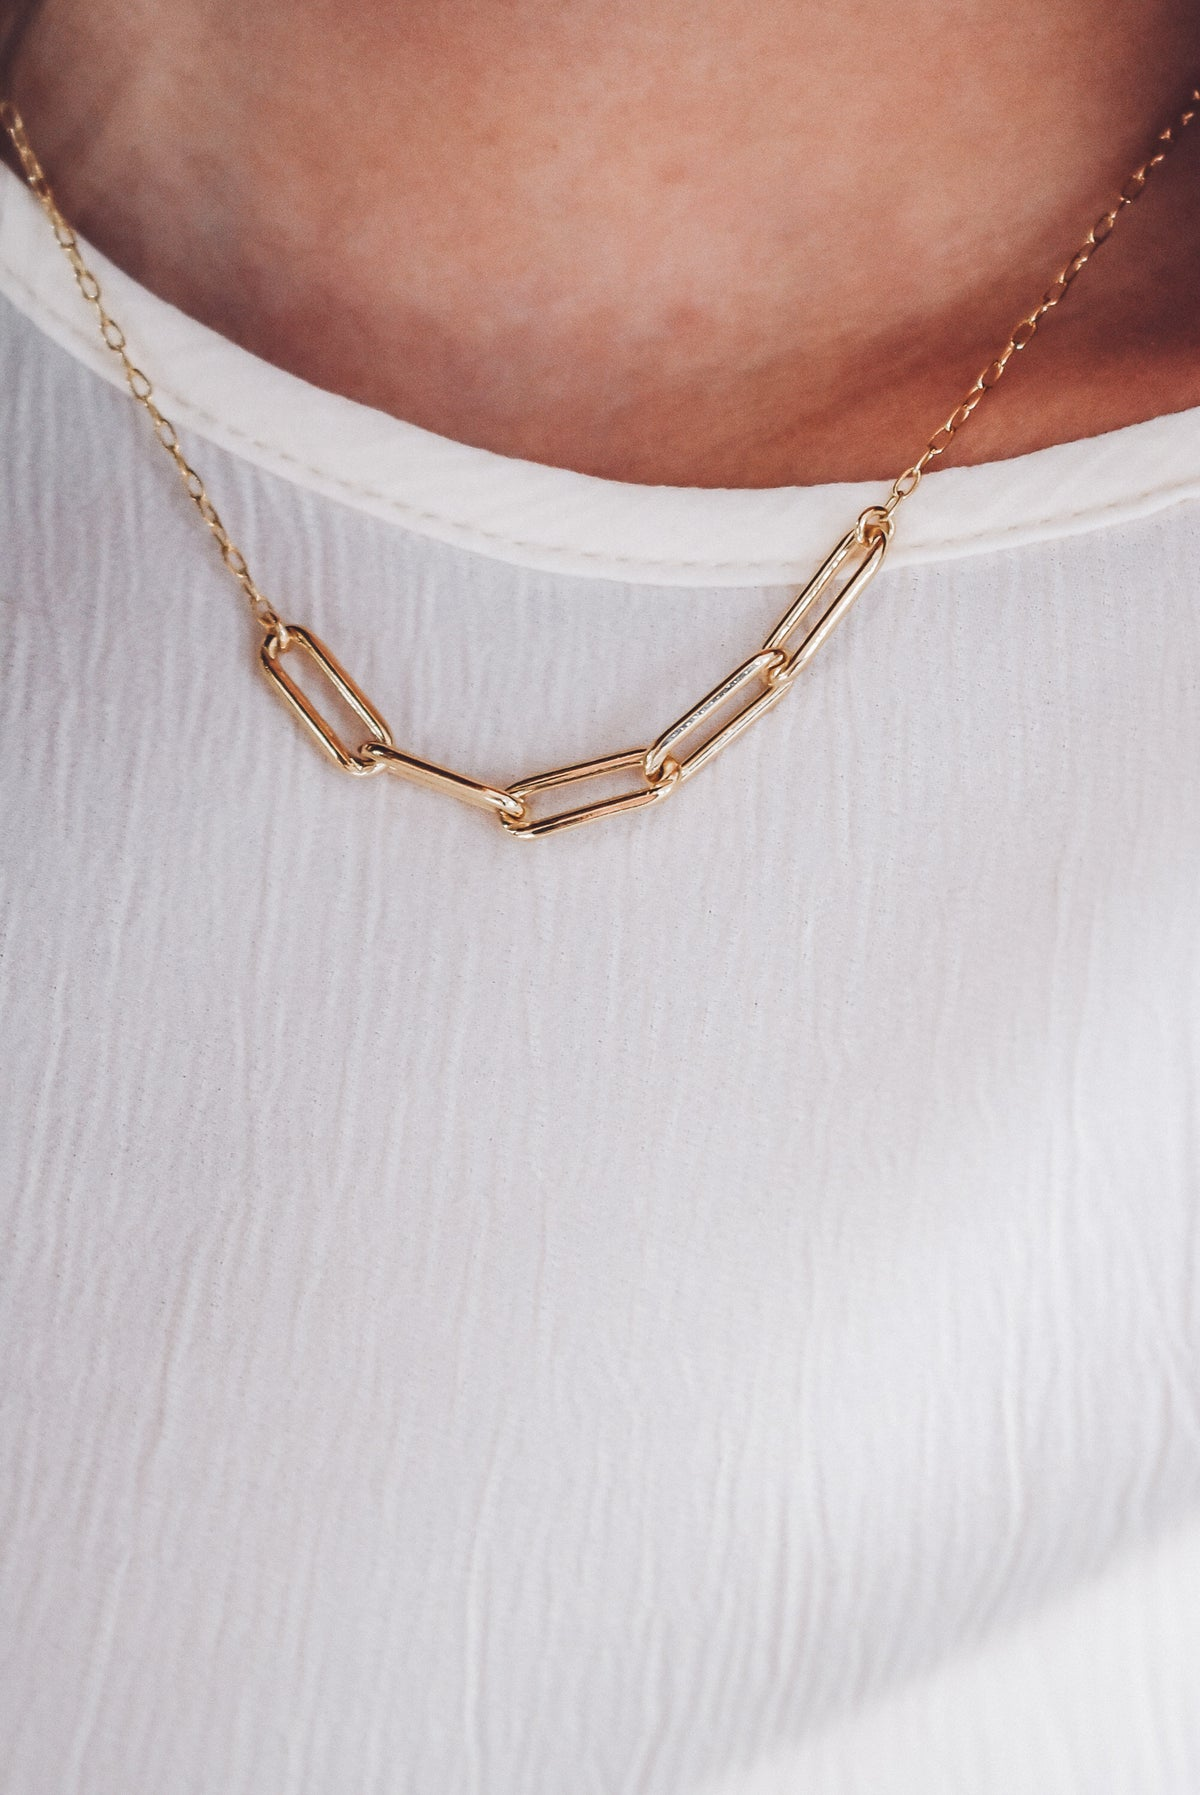 5 LINK NECKLACE